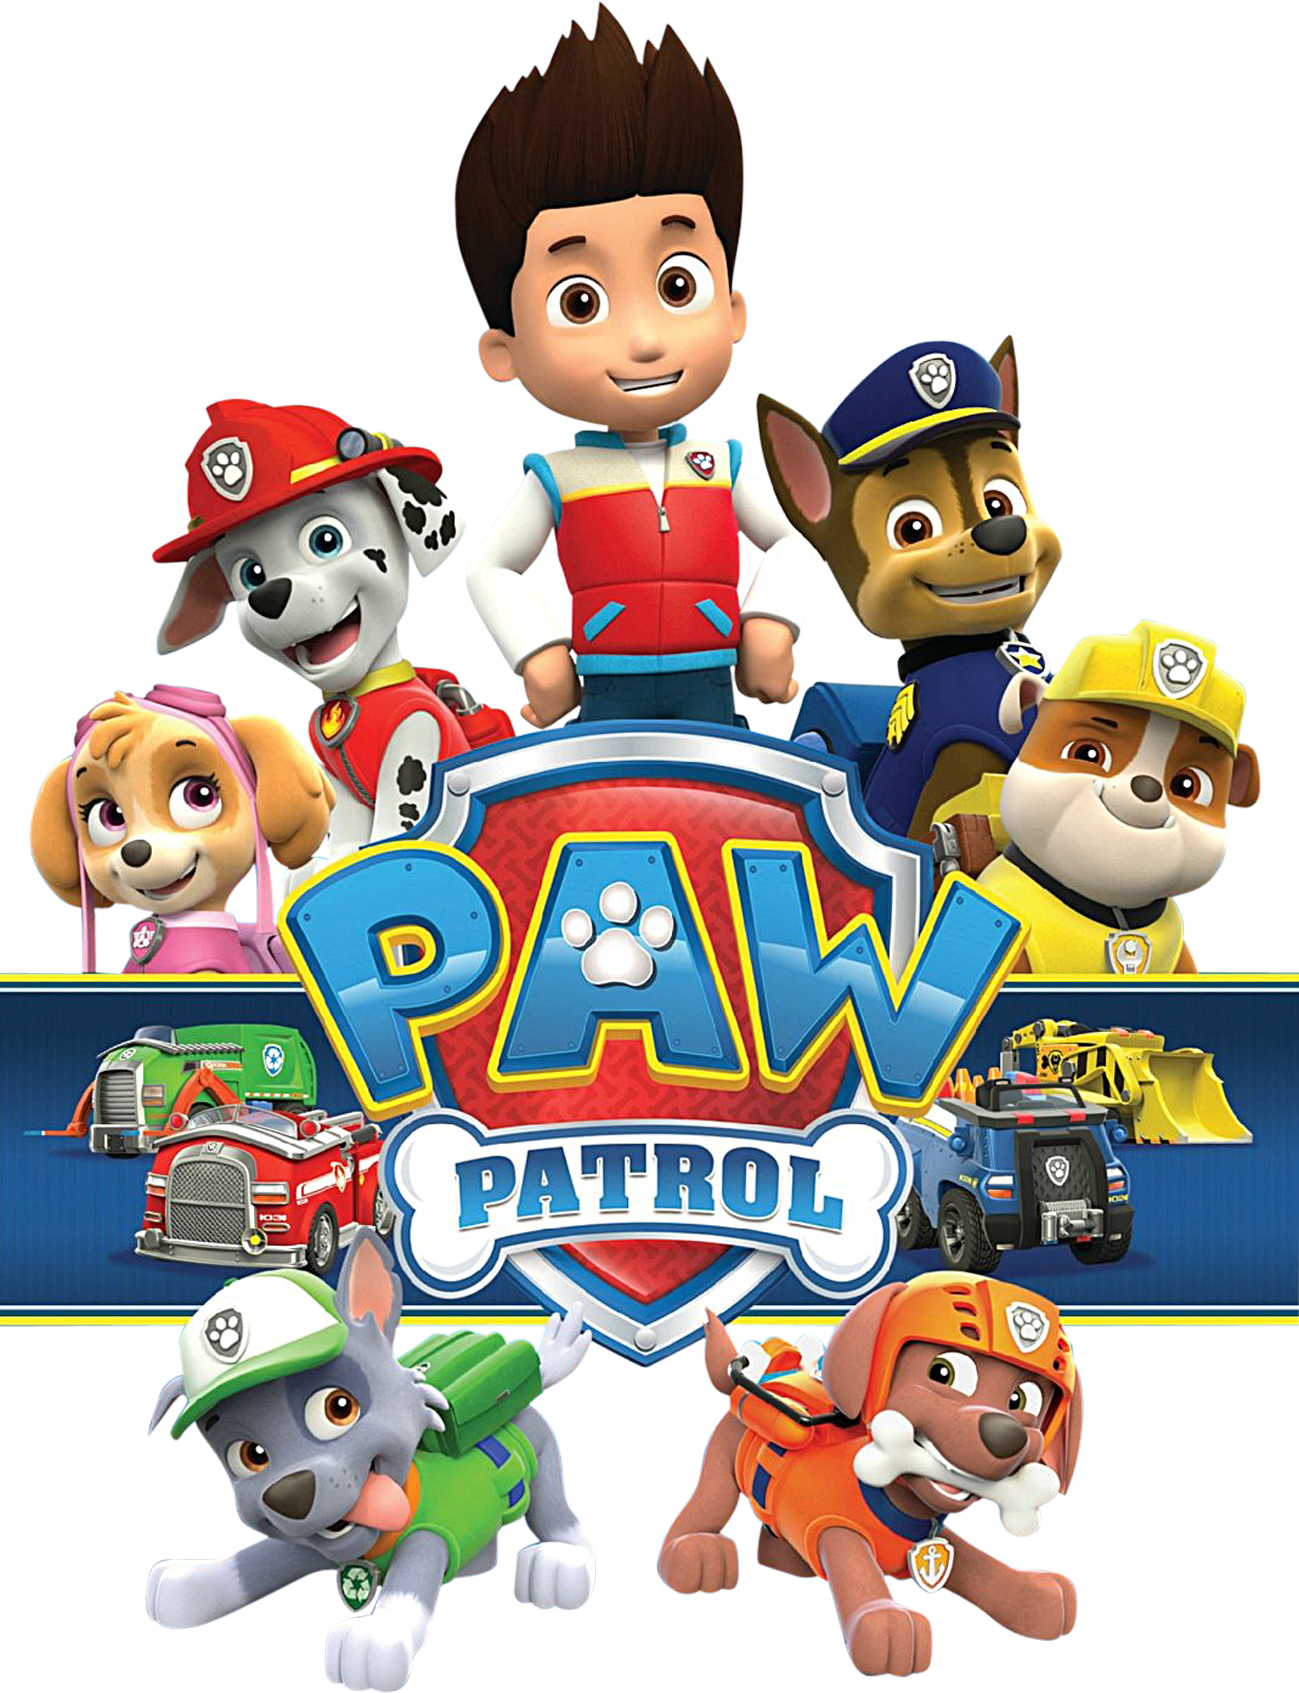 Clipart of paw patrol jpg free library Paw patrol free clipart - ClipartFest jpg free library